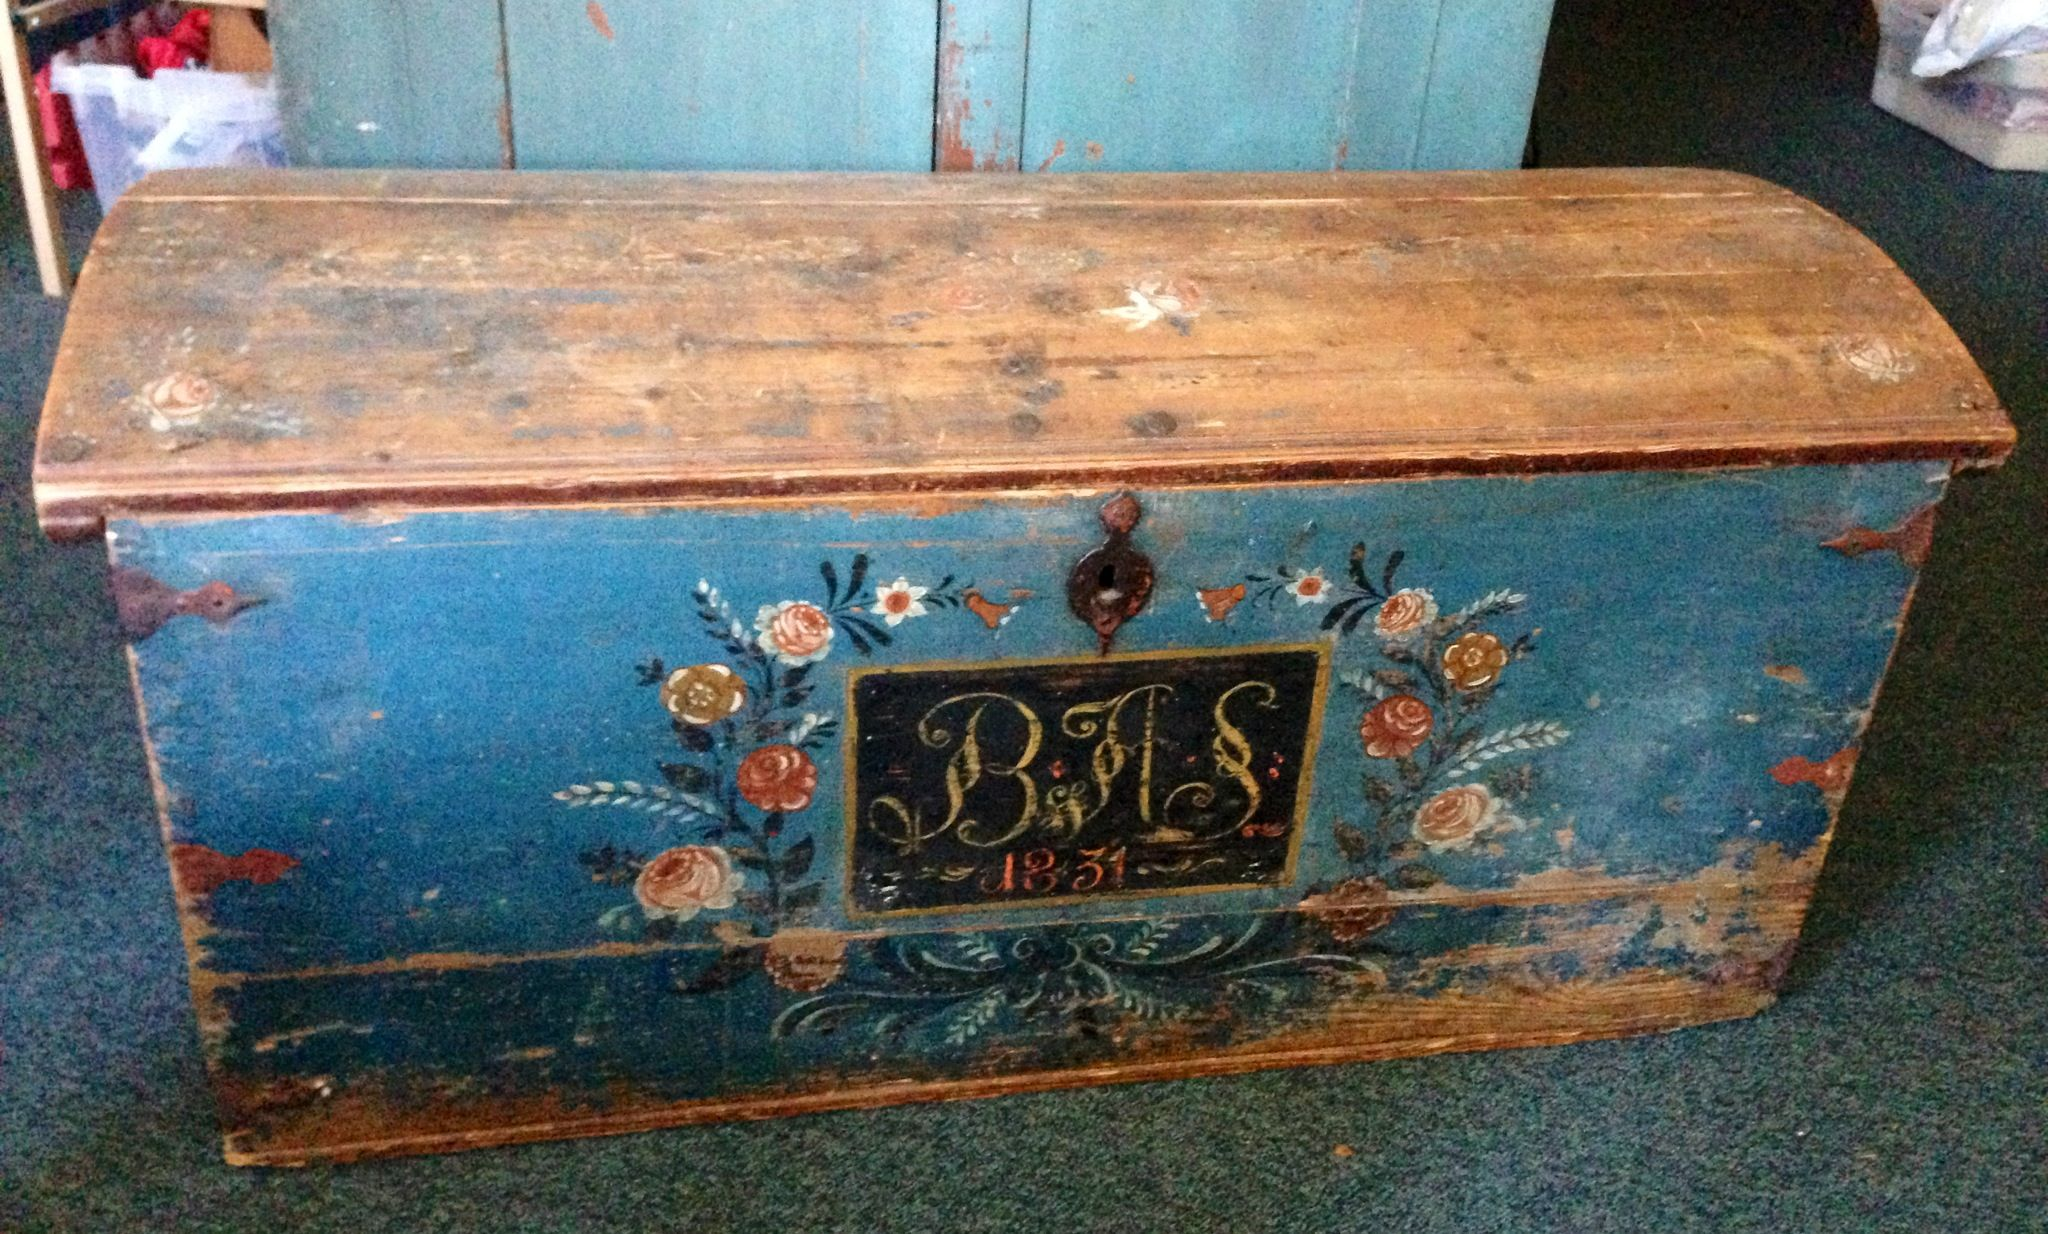 Antique Swedish Trunk From 1831